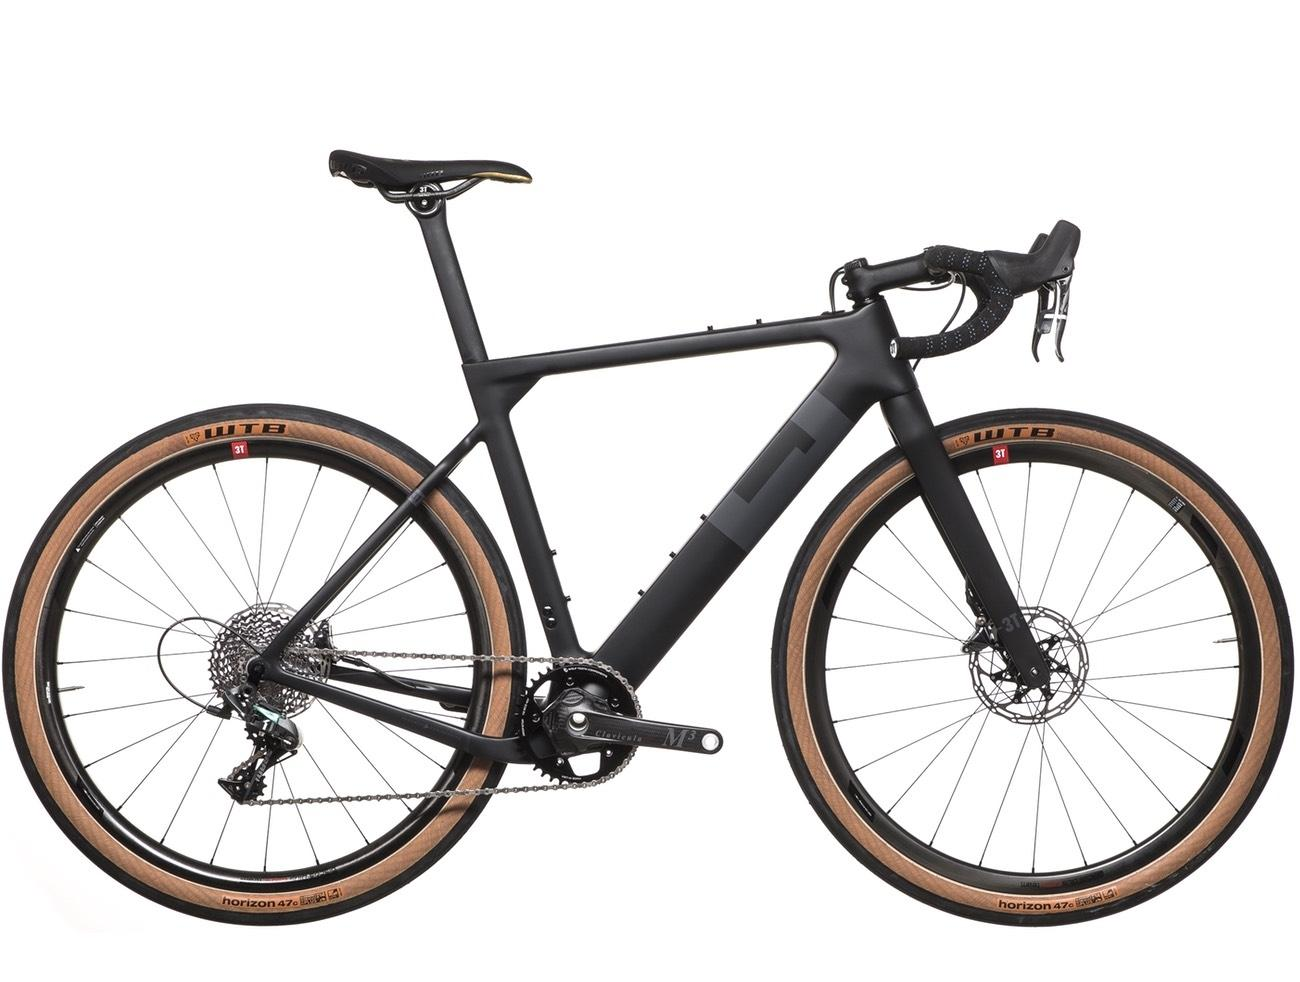 3T Exploro LTD Individualaufbau